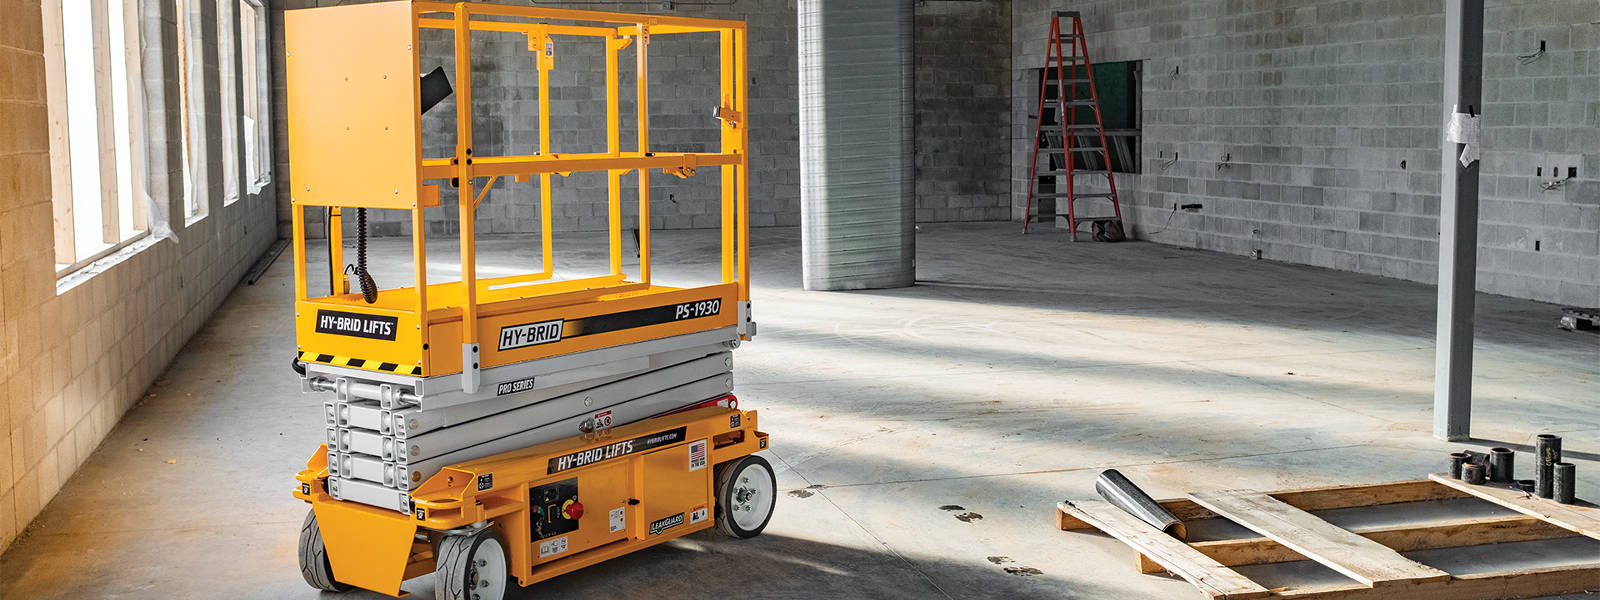 Rent Elevated Work Platforms in the Chicago Metro area